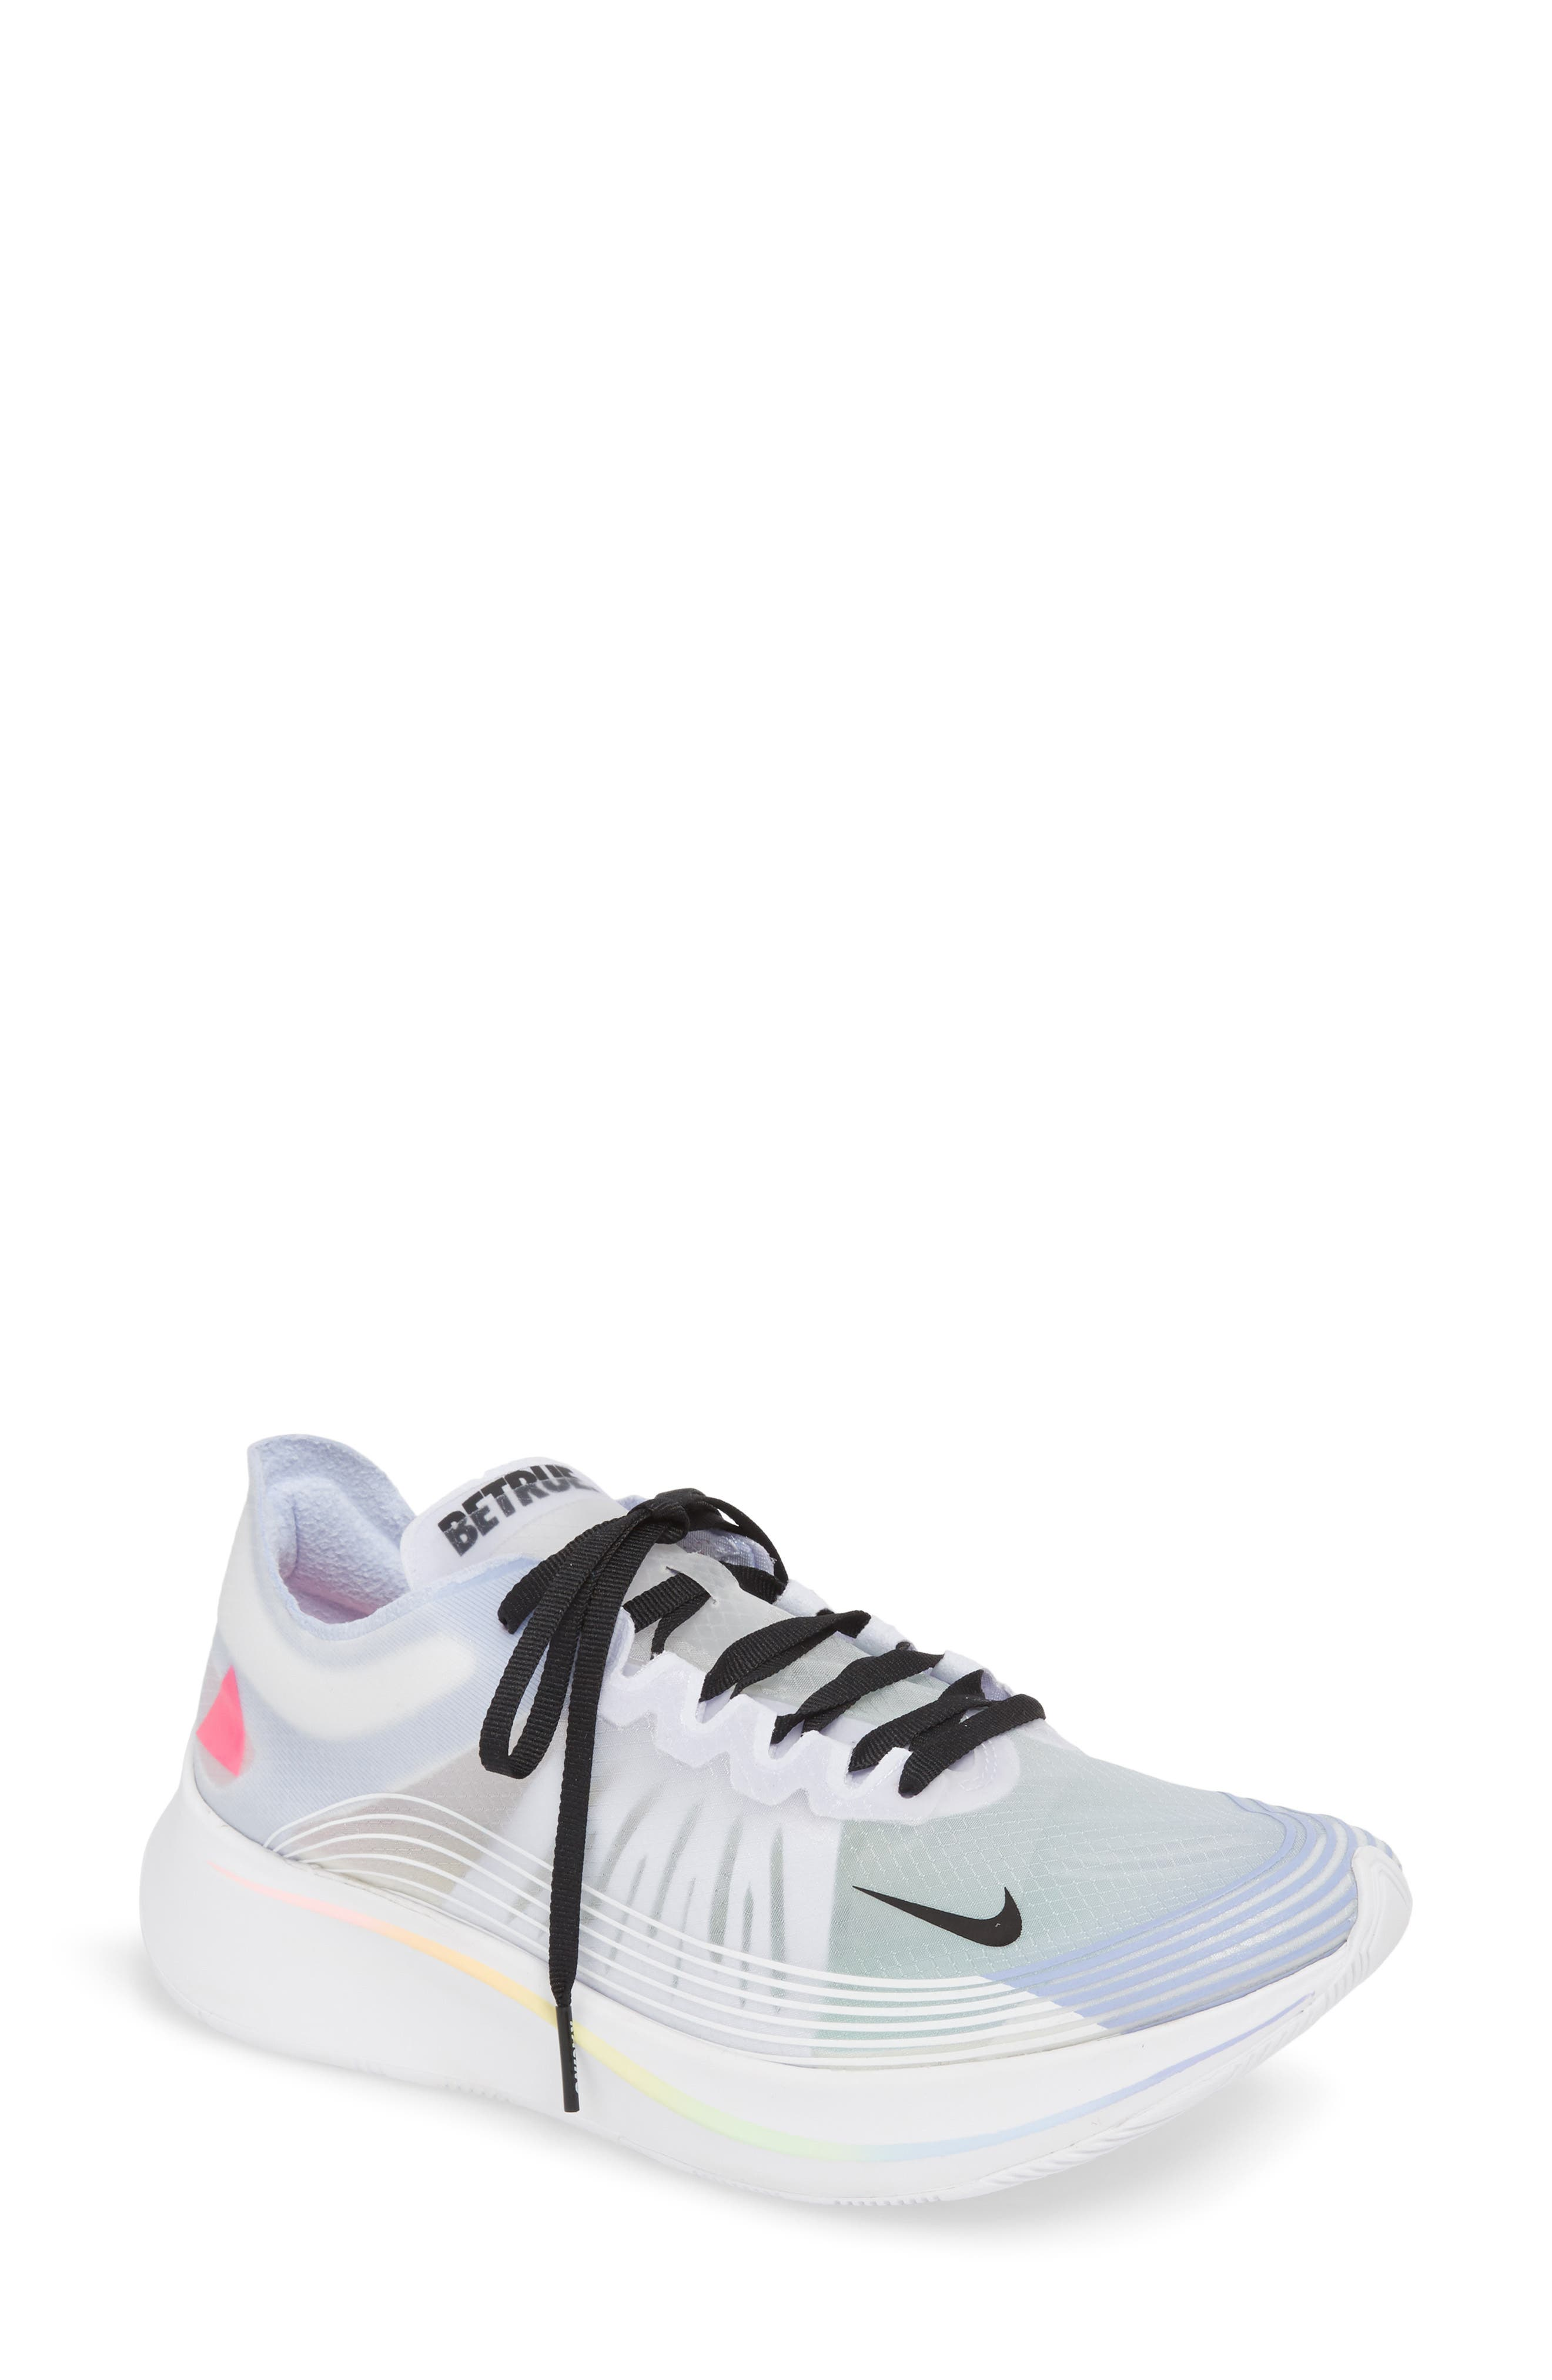 Nordstrom x Nike Zoom Fly BETRUE Running Shoe,                         Main,                         color, 105